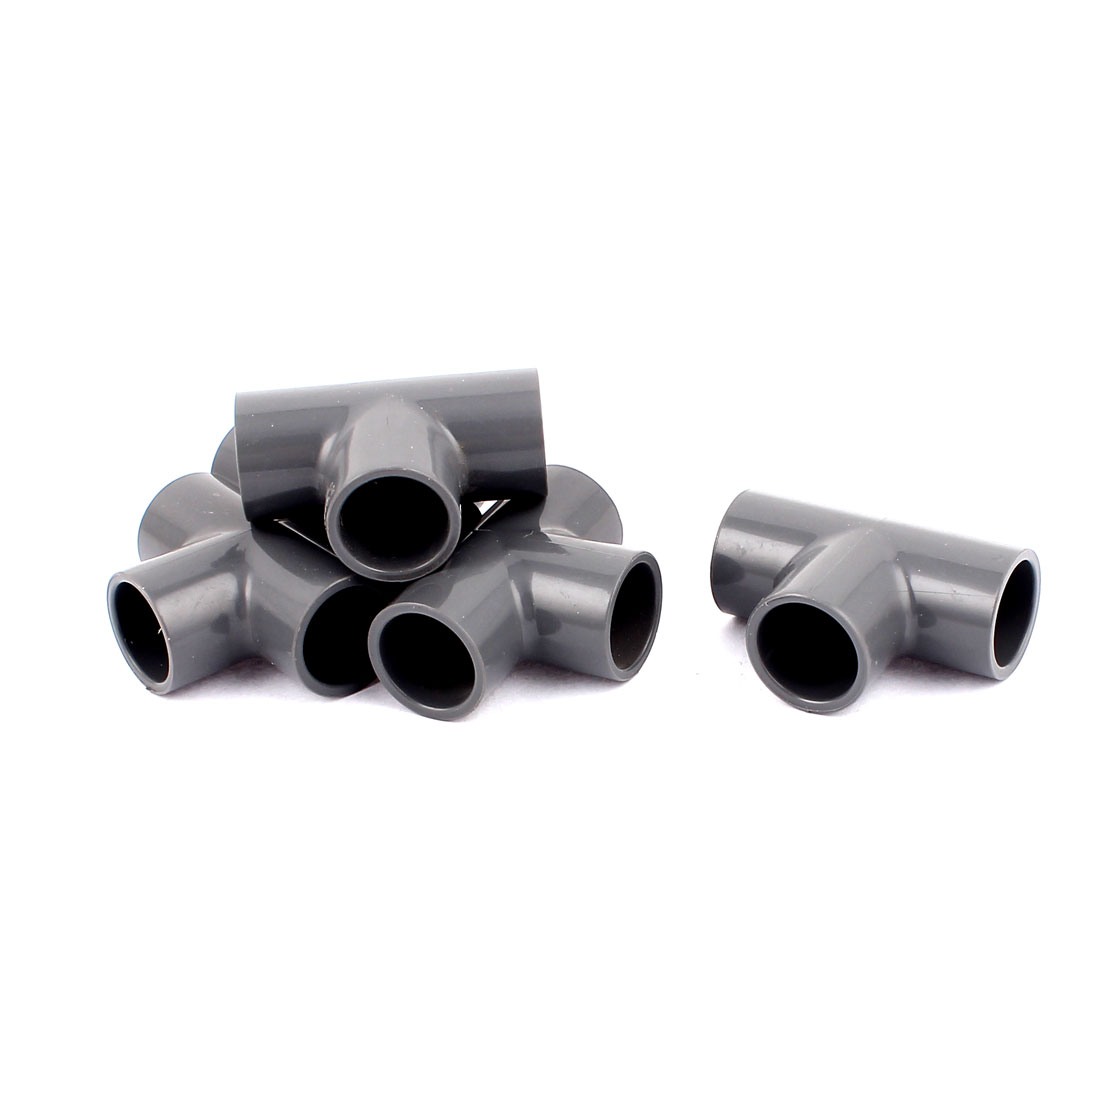 20mm Inner Dia T Shape 3 Way Water Pipe Tube Fitting Connector Gray 5Pcs